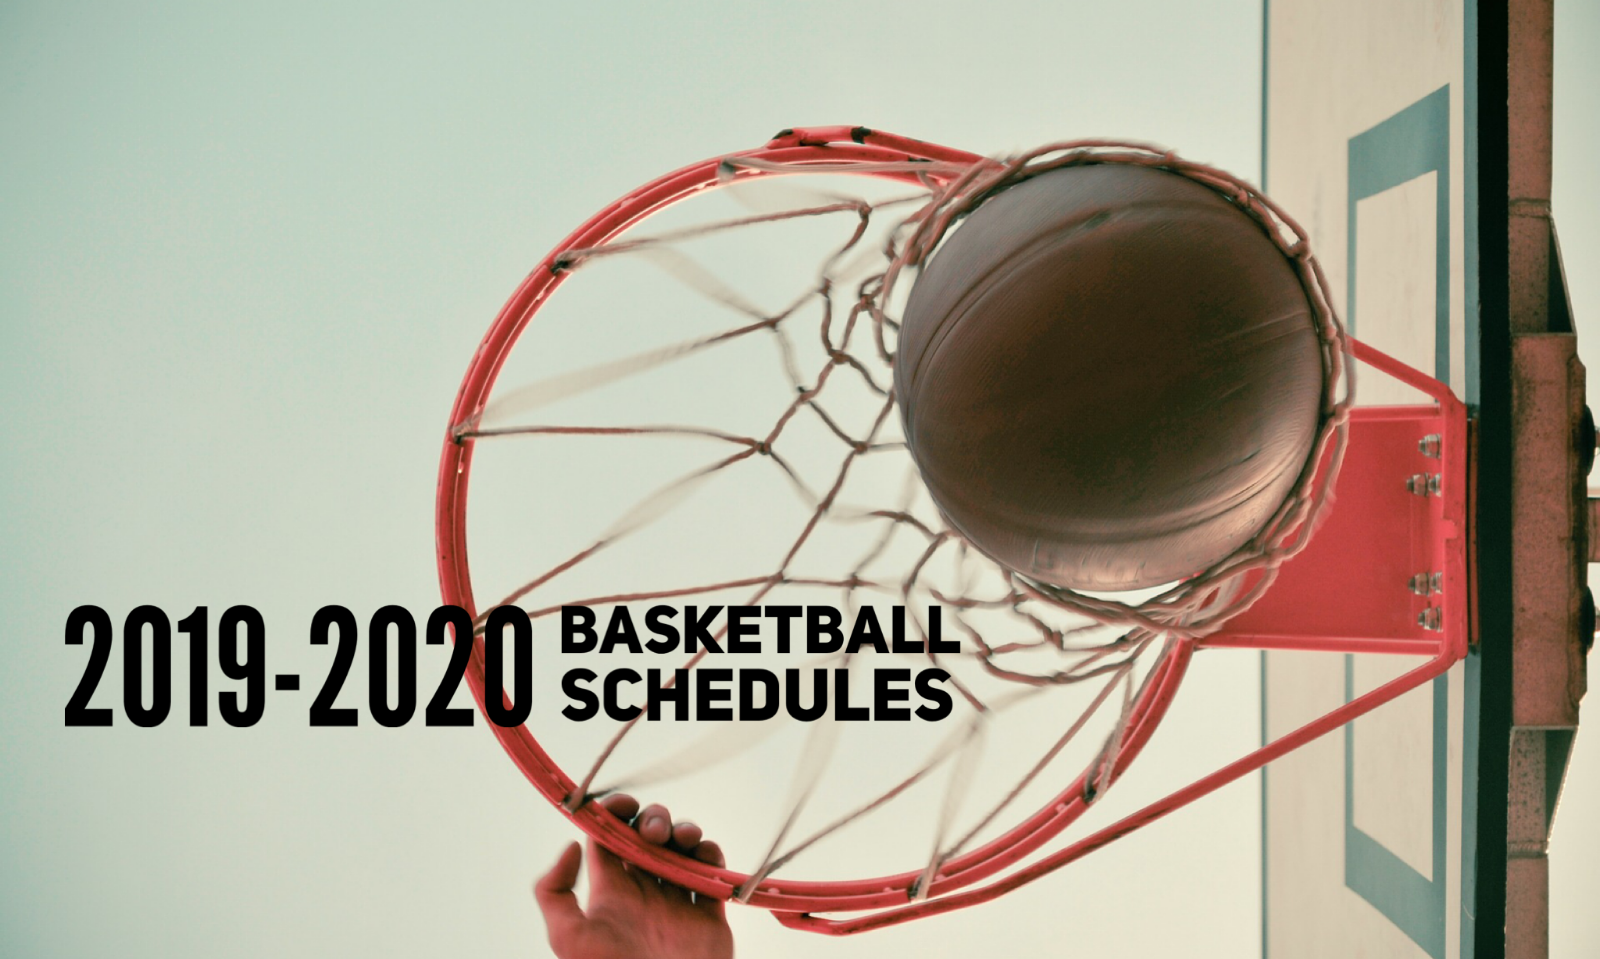 REVISION TO THE 2019-2020 BASKETBALL SCHEDULES